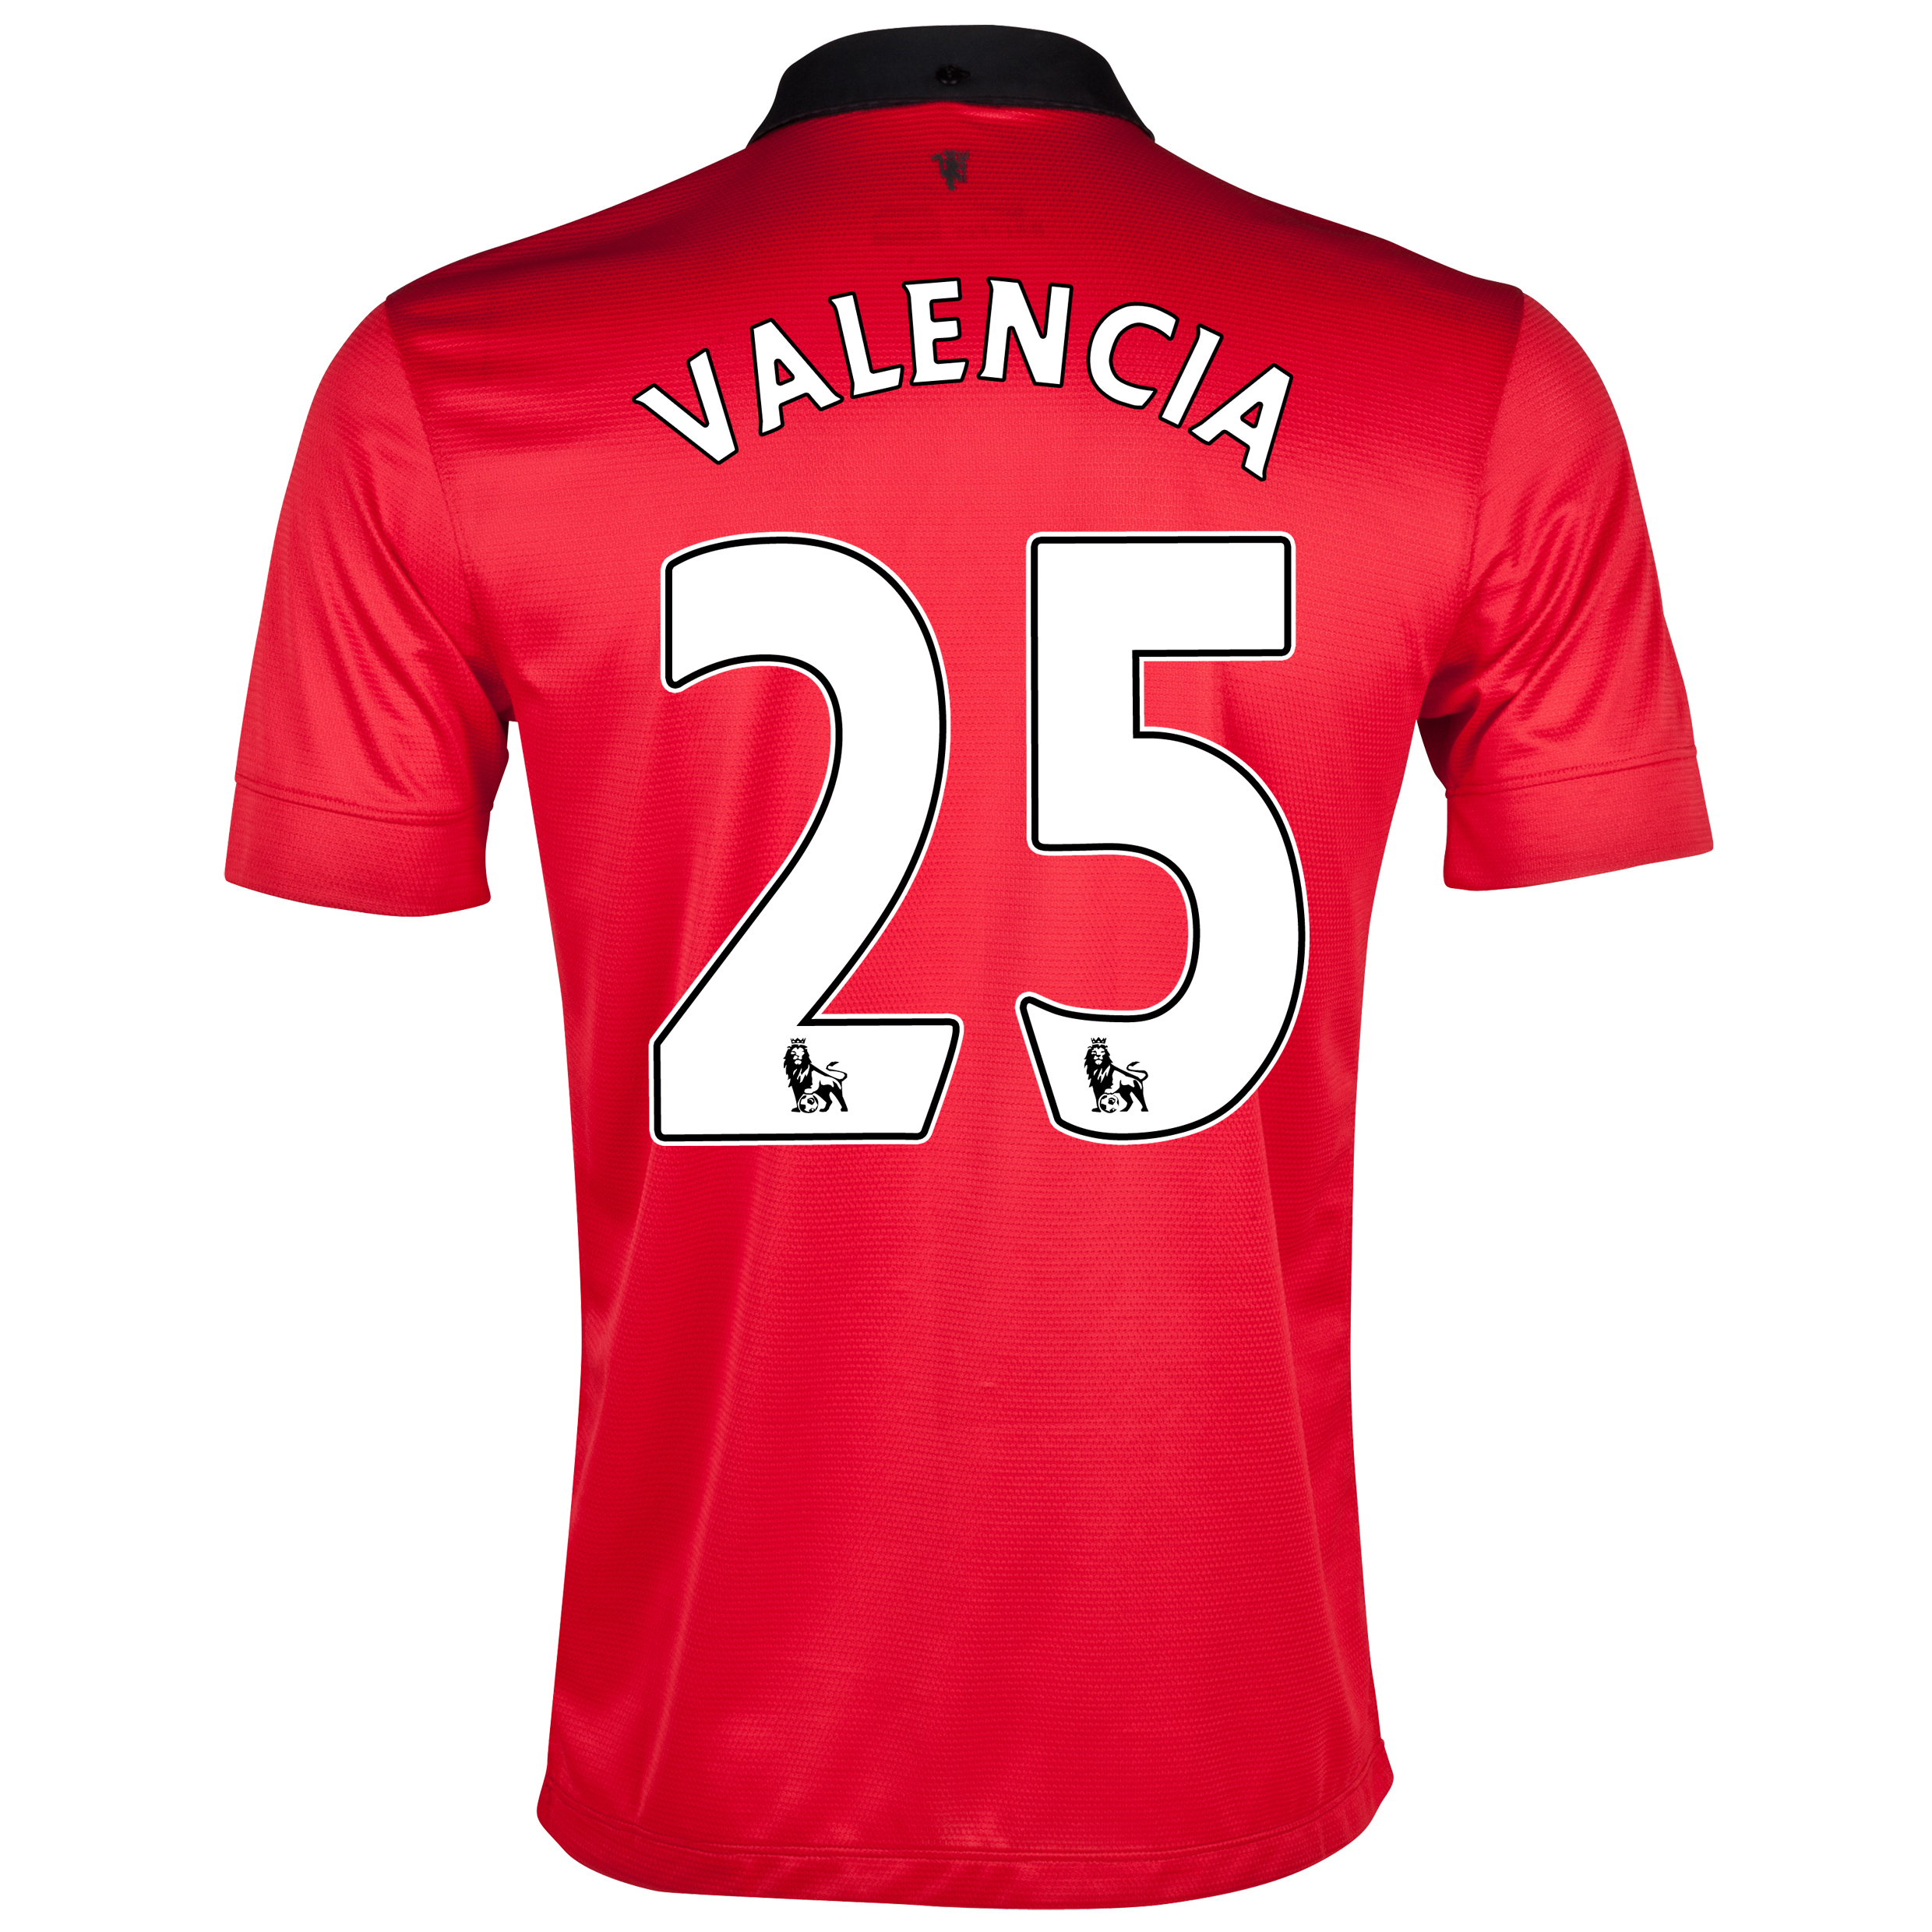 Manchester United Home Shirt 2013/14 with Valencia 7 printing